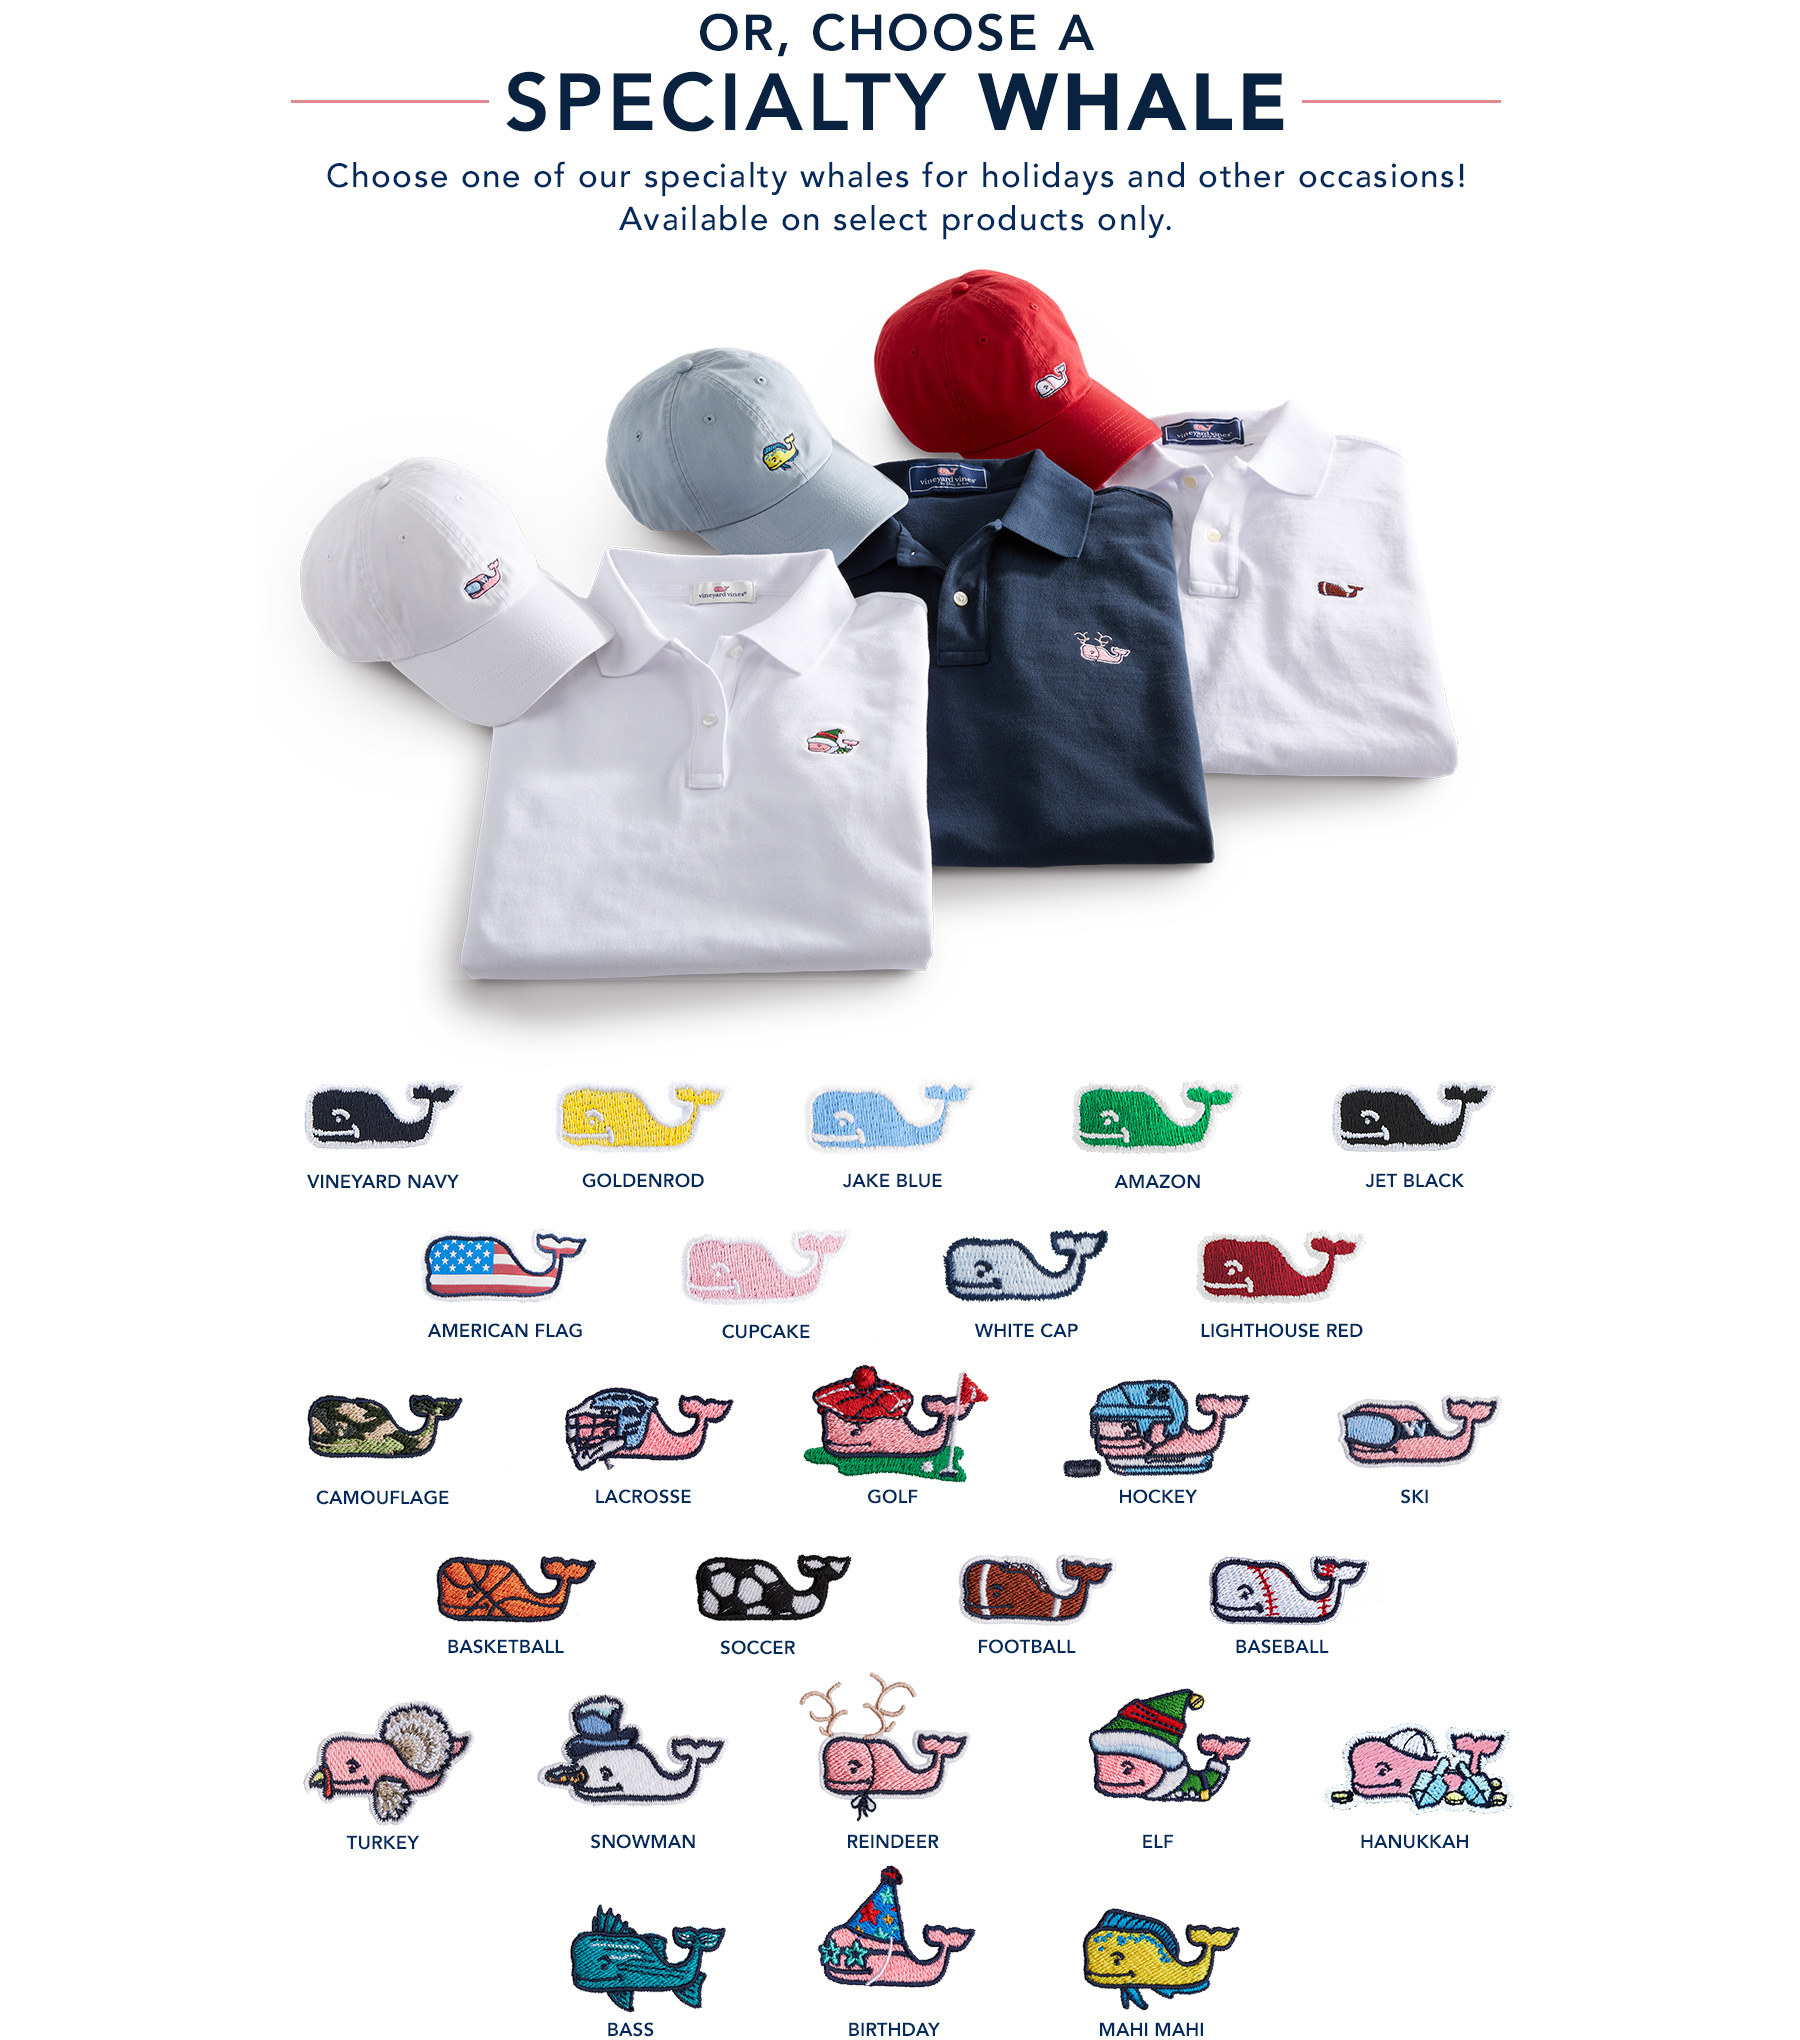 3. Pick your Whale - Now offering specialty whales. Choose one of many different themed whales for your polo or hat